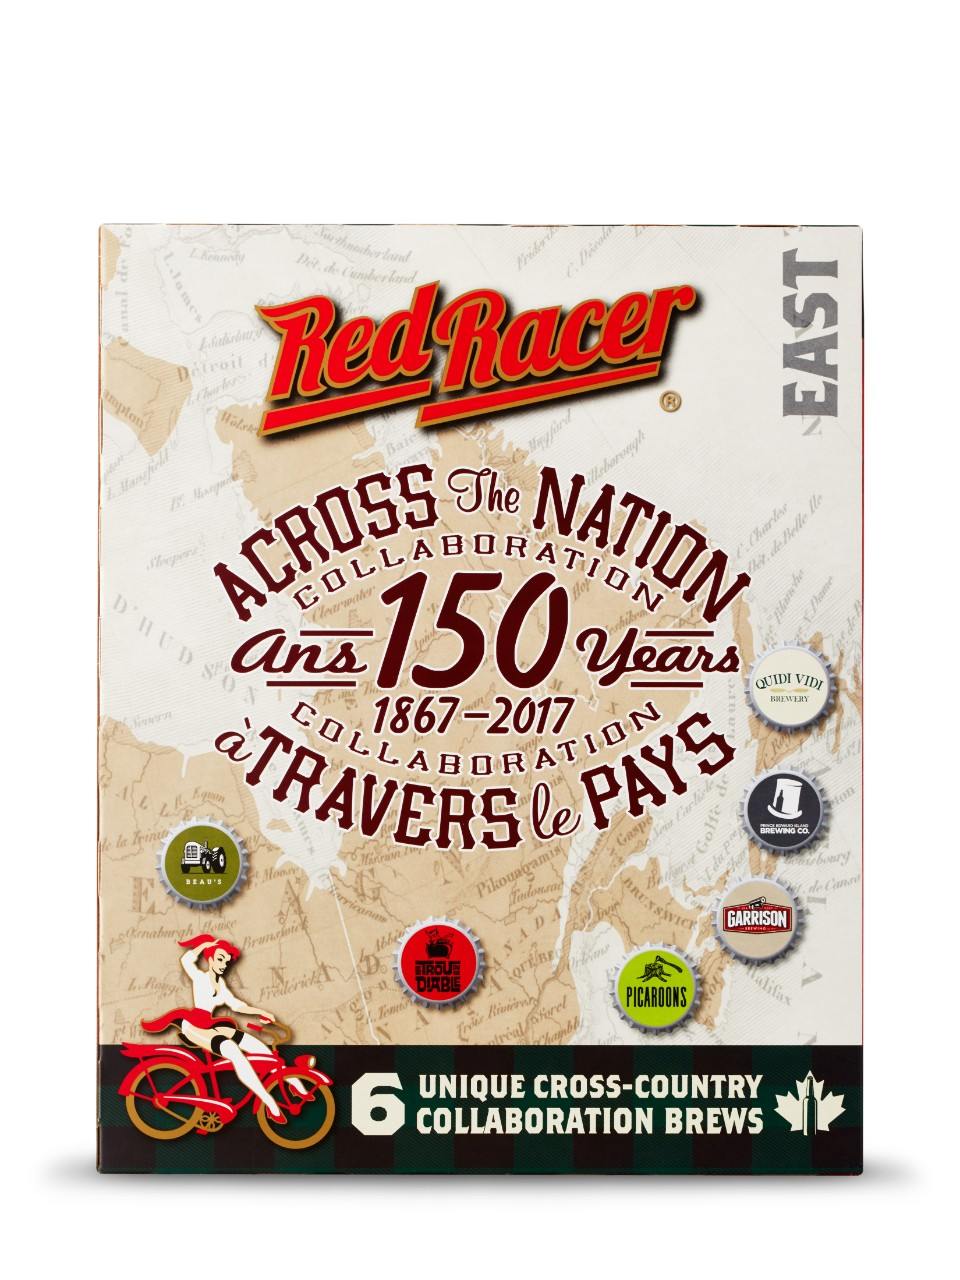 Red Racer Across the Nation Collaboration - East